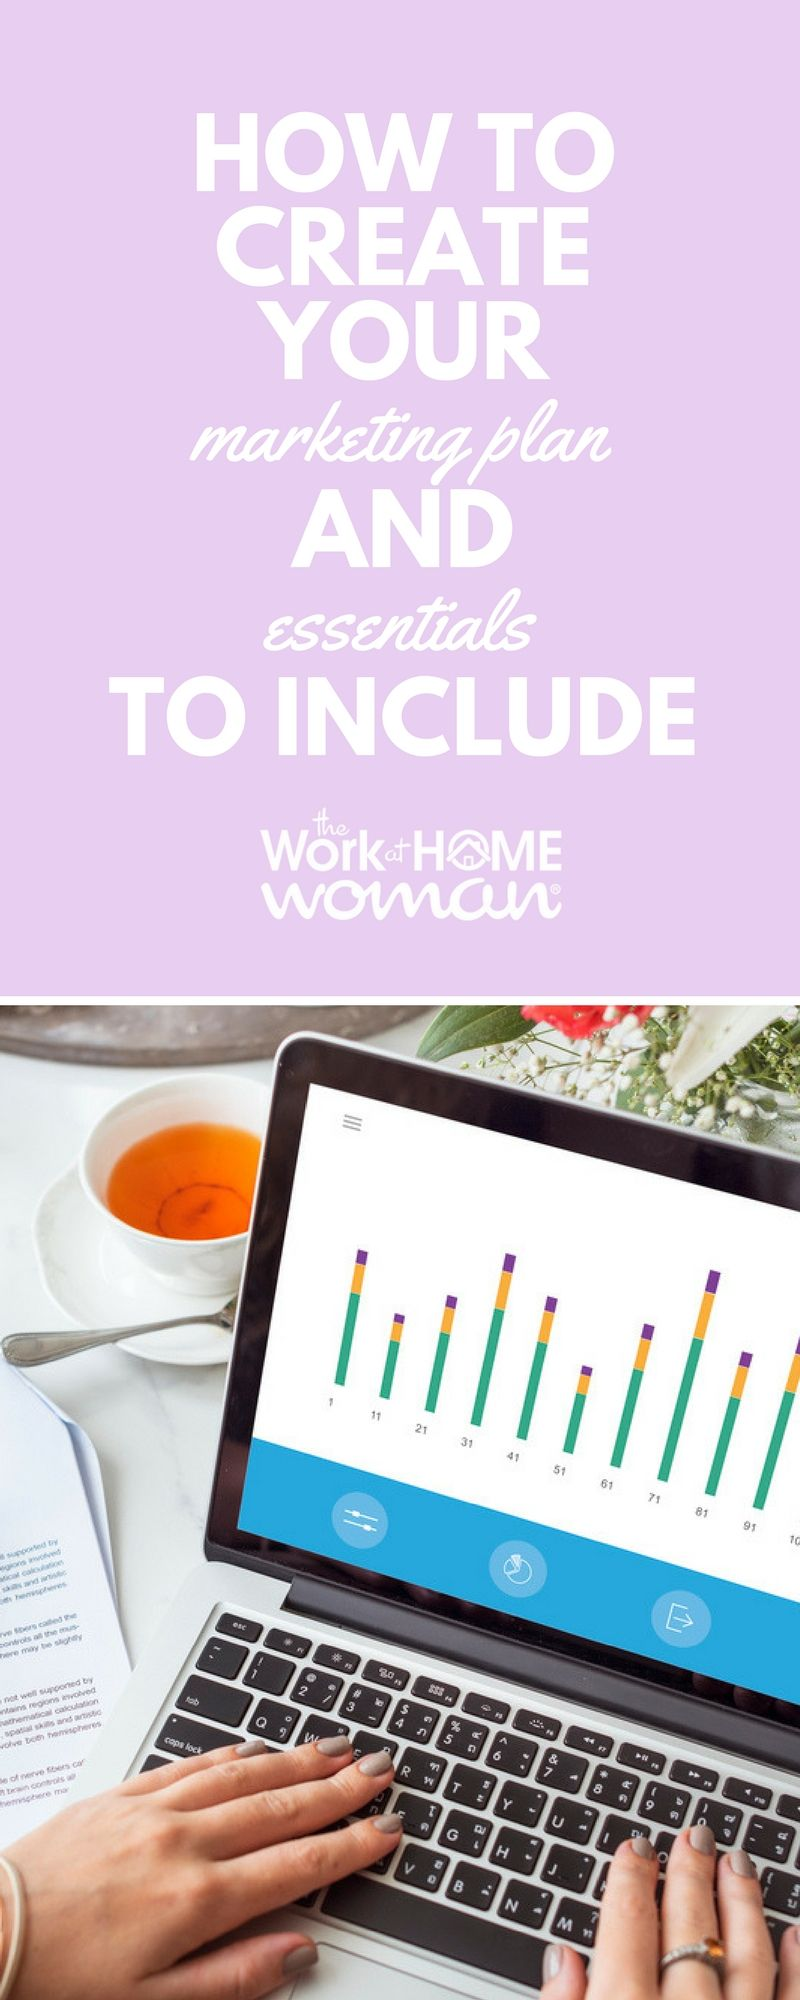 How to Create Your Marketing Plan and Essentials to